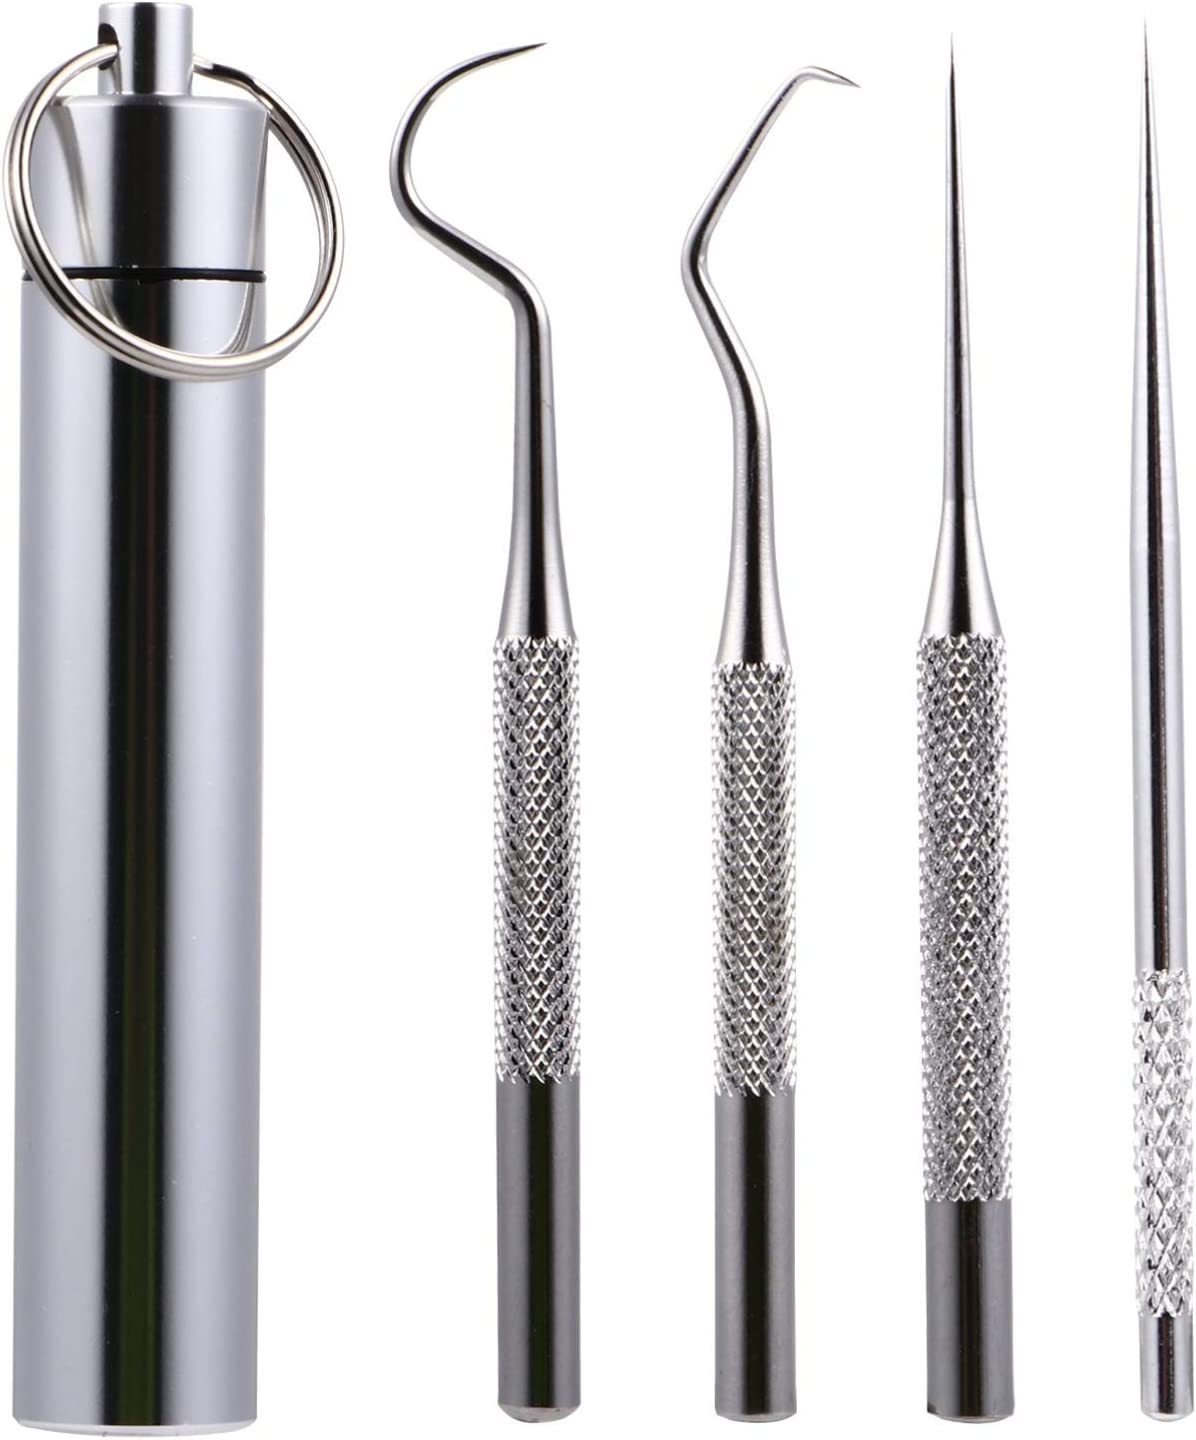 Healifty 1 Set Portable Indefinitely Detroit Mall Stainless Steel Toothpicks Pocket Re